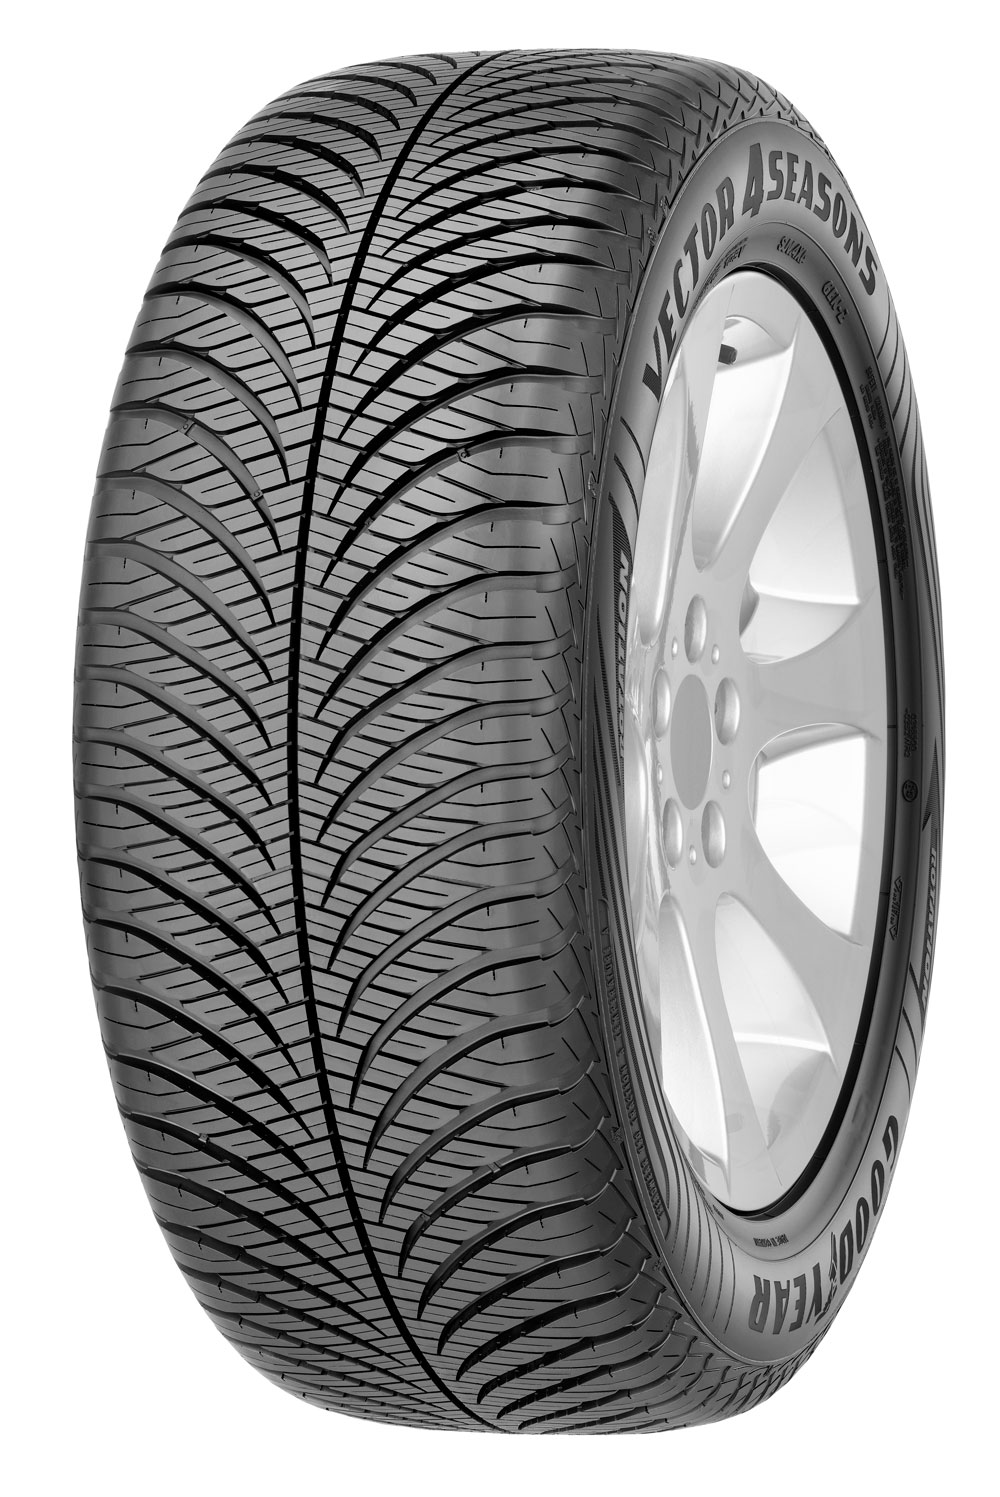 Автошина GOODYEAR VEC 4SEASONS GEN-2 185/60 R14 82H Лето